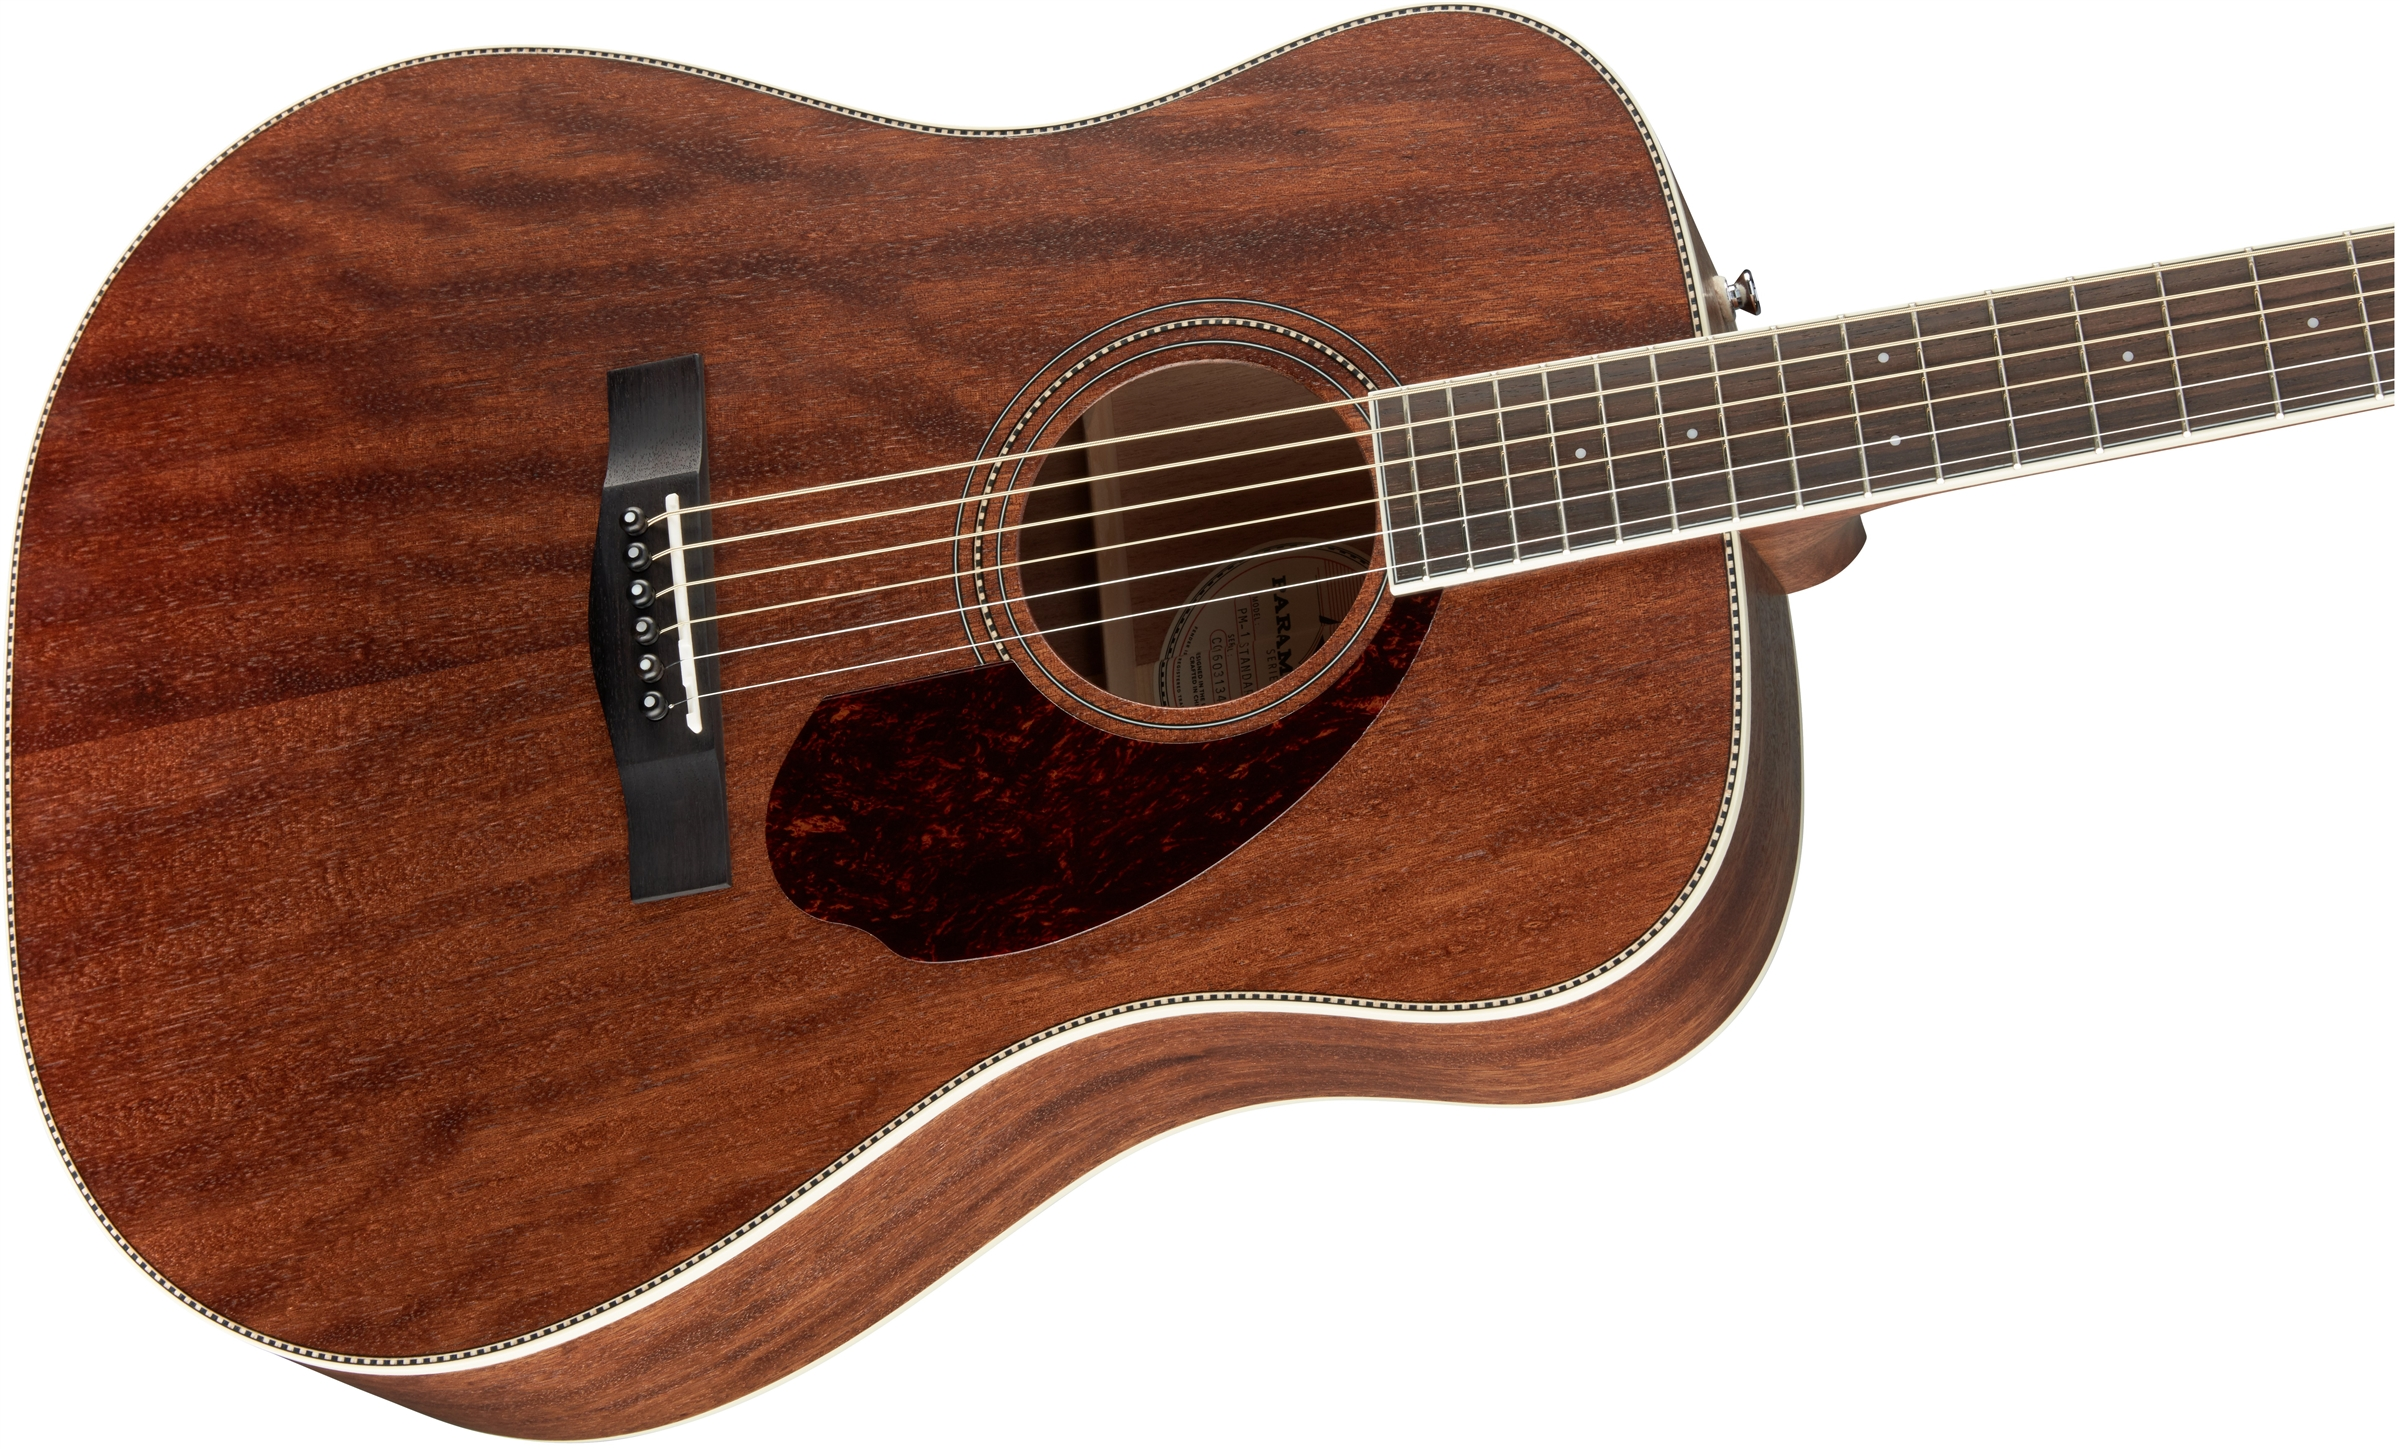 f03573472e65 PM-1 Standard Dreadnought All-Mahogany NE